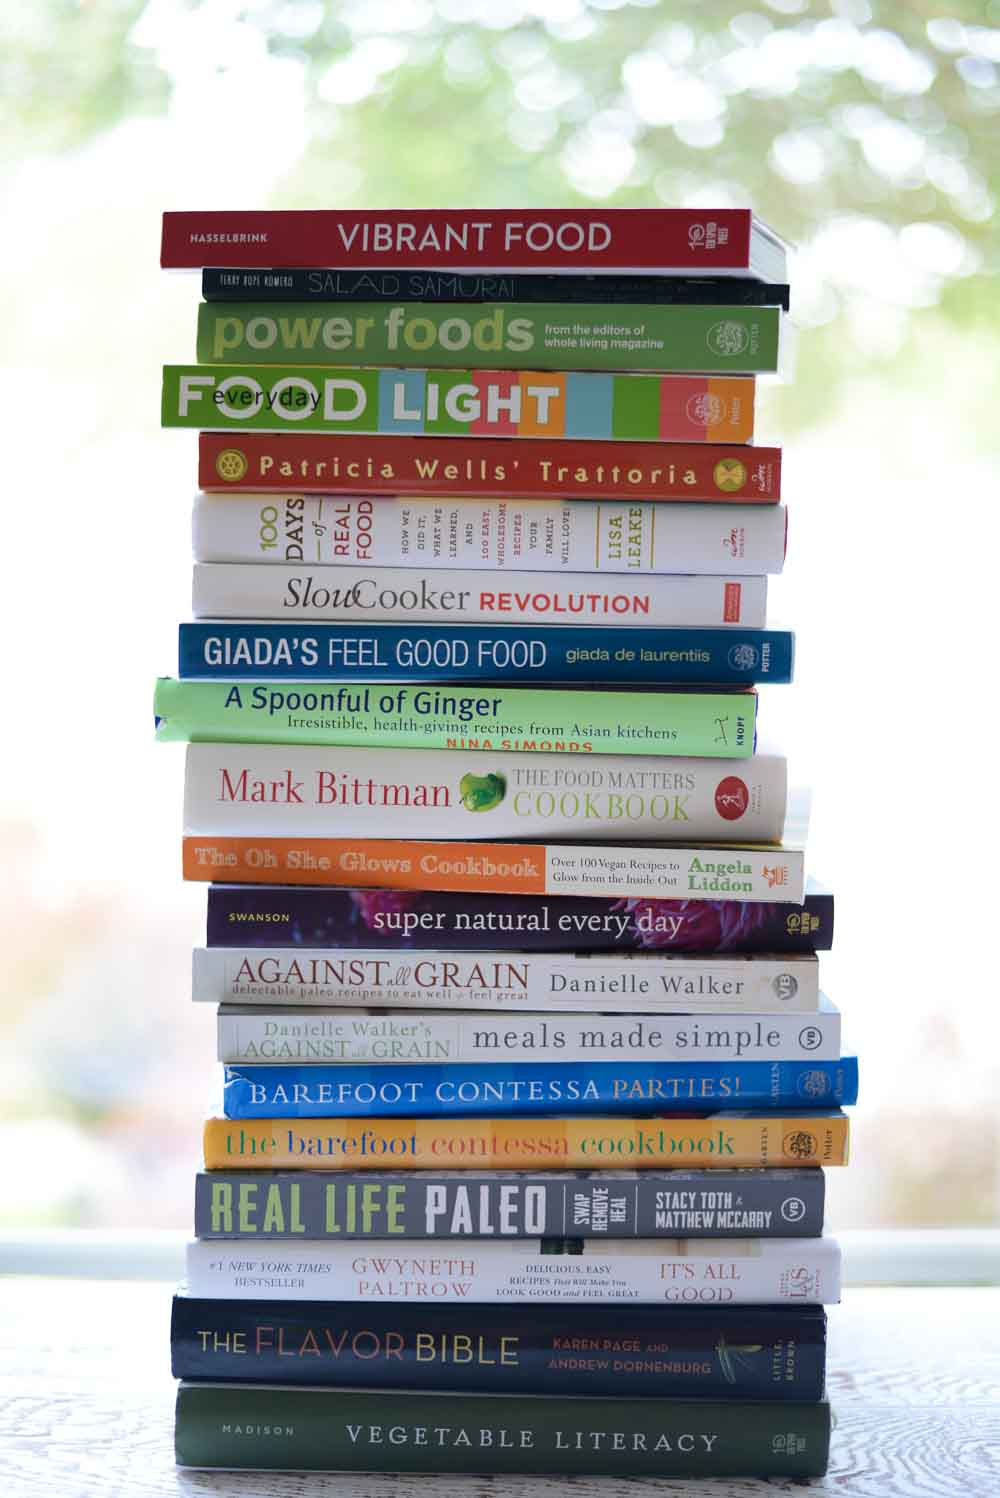 My favorite healthy cookbooks!